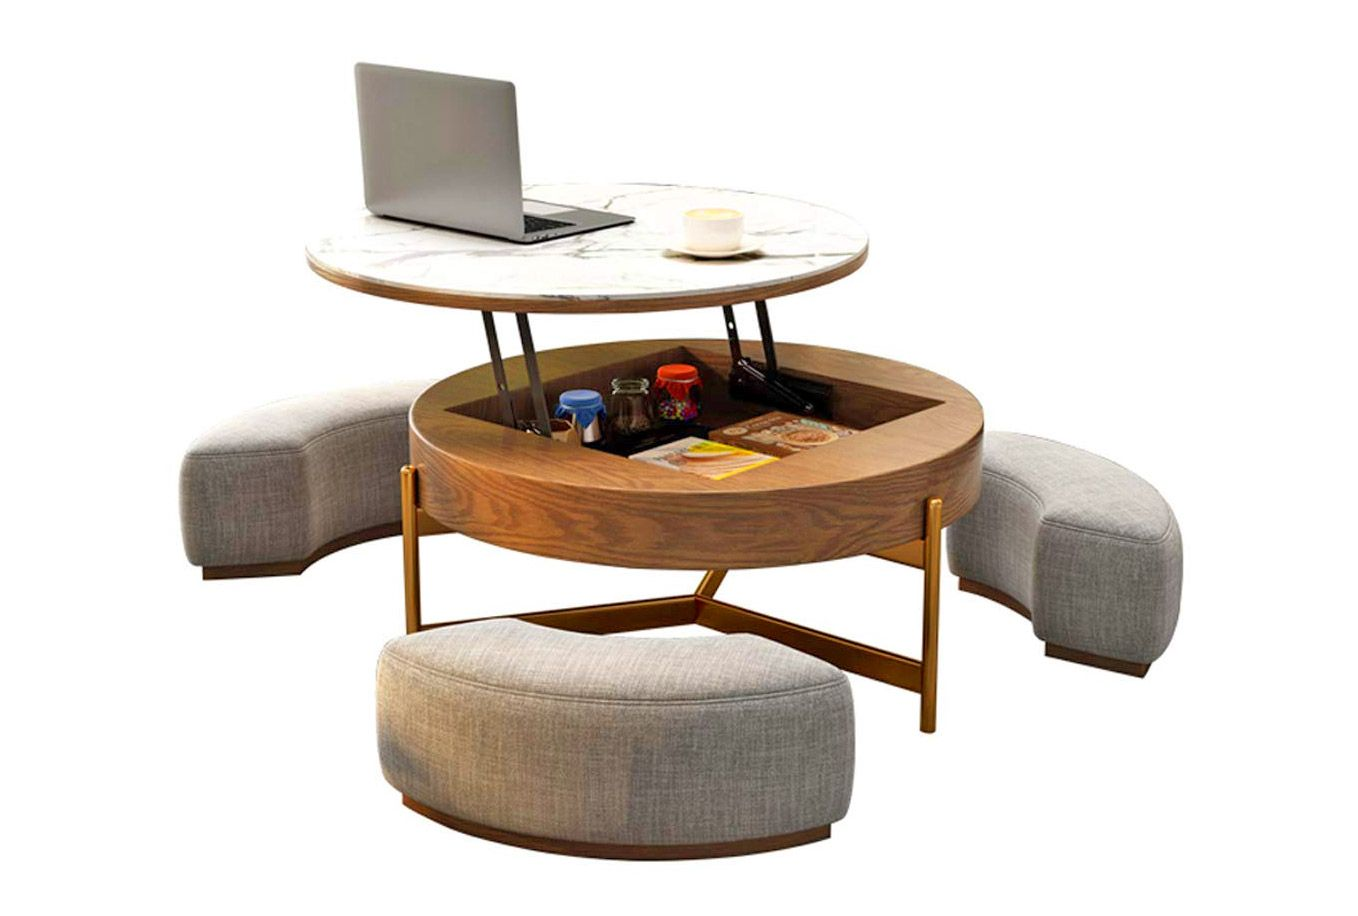 This Amazing Rising Coffee Table Has 3 Integrated Ottomans That Hide Underneath It In 2021 Coffee Table Coffee Table With Seating Coffee Table In Bedroom [ 916 x 1358 Pixel ]